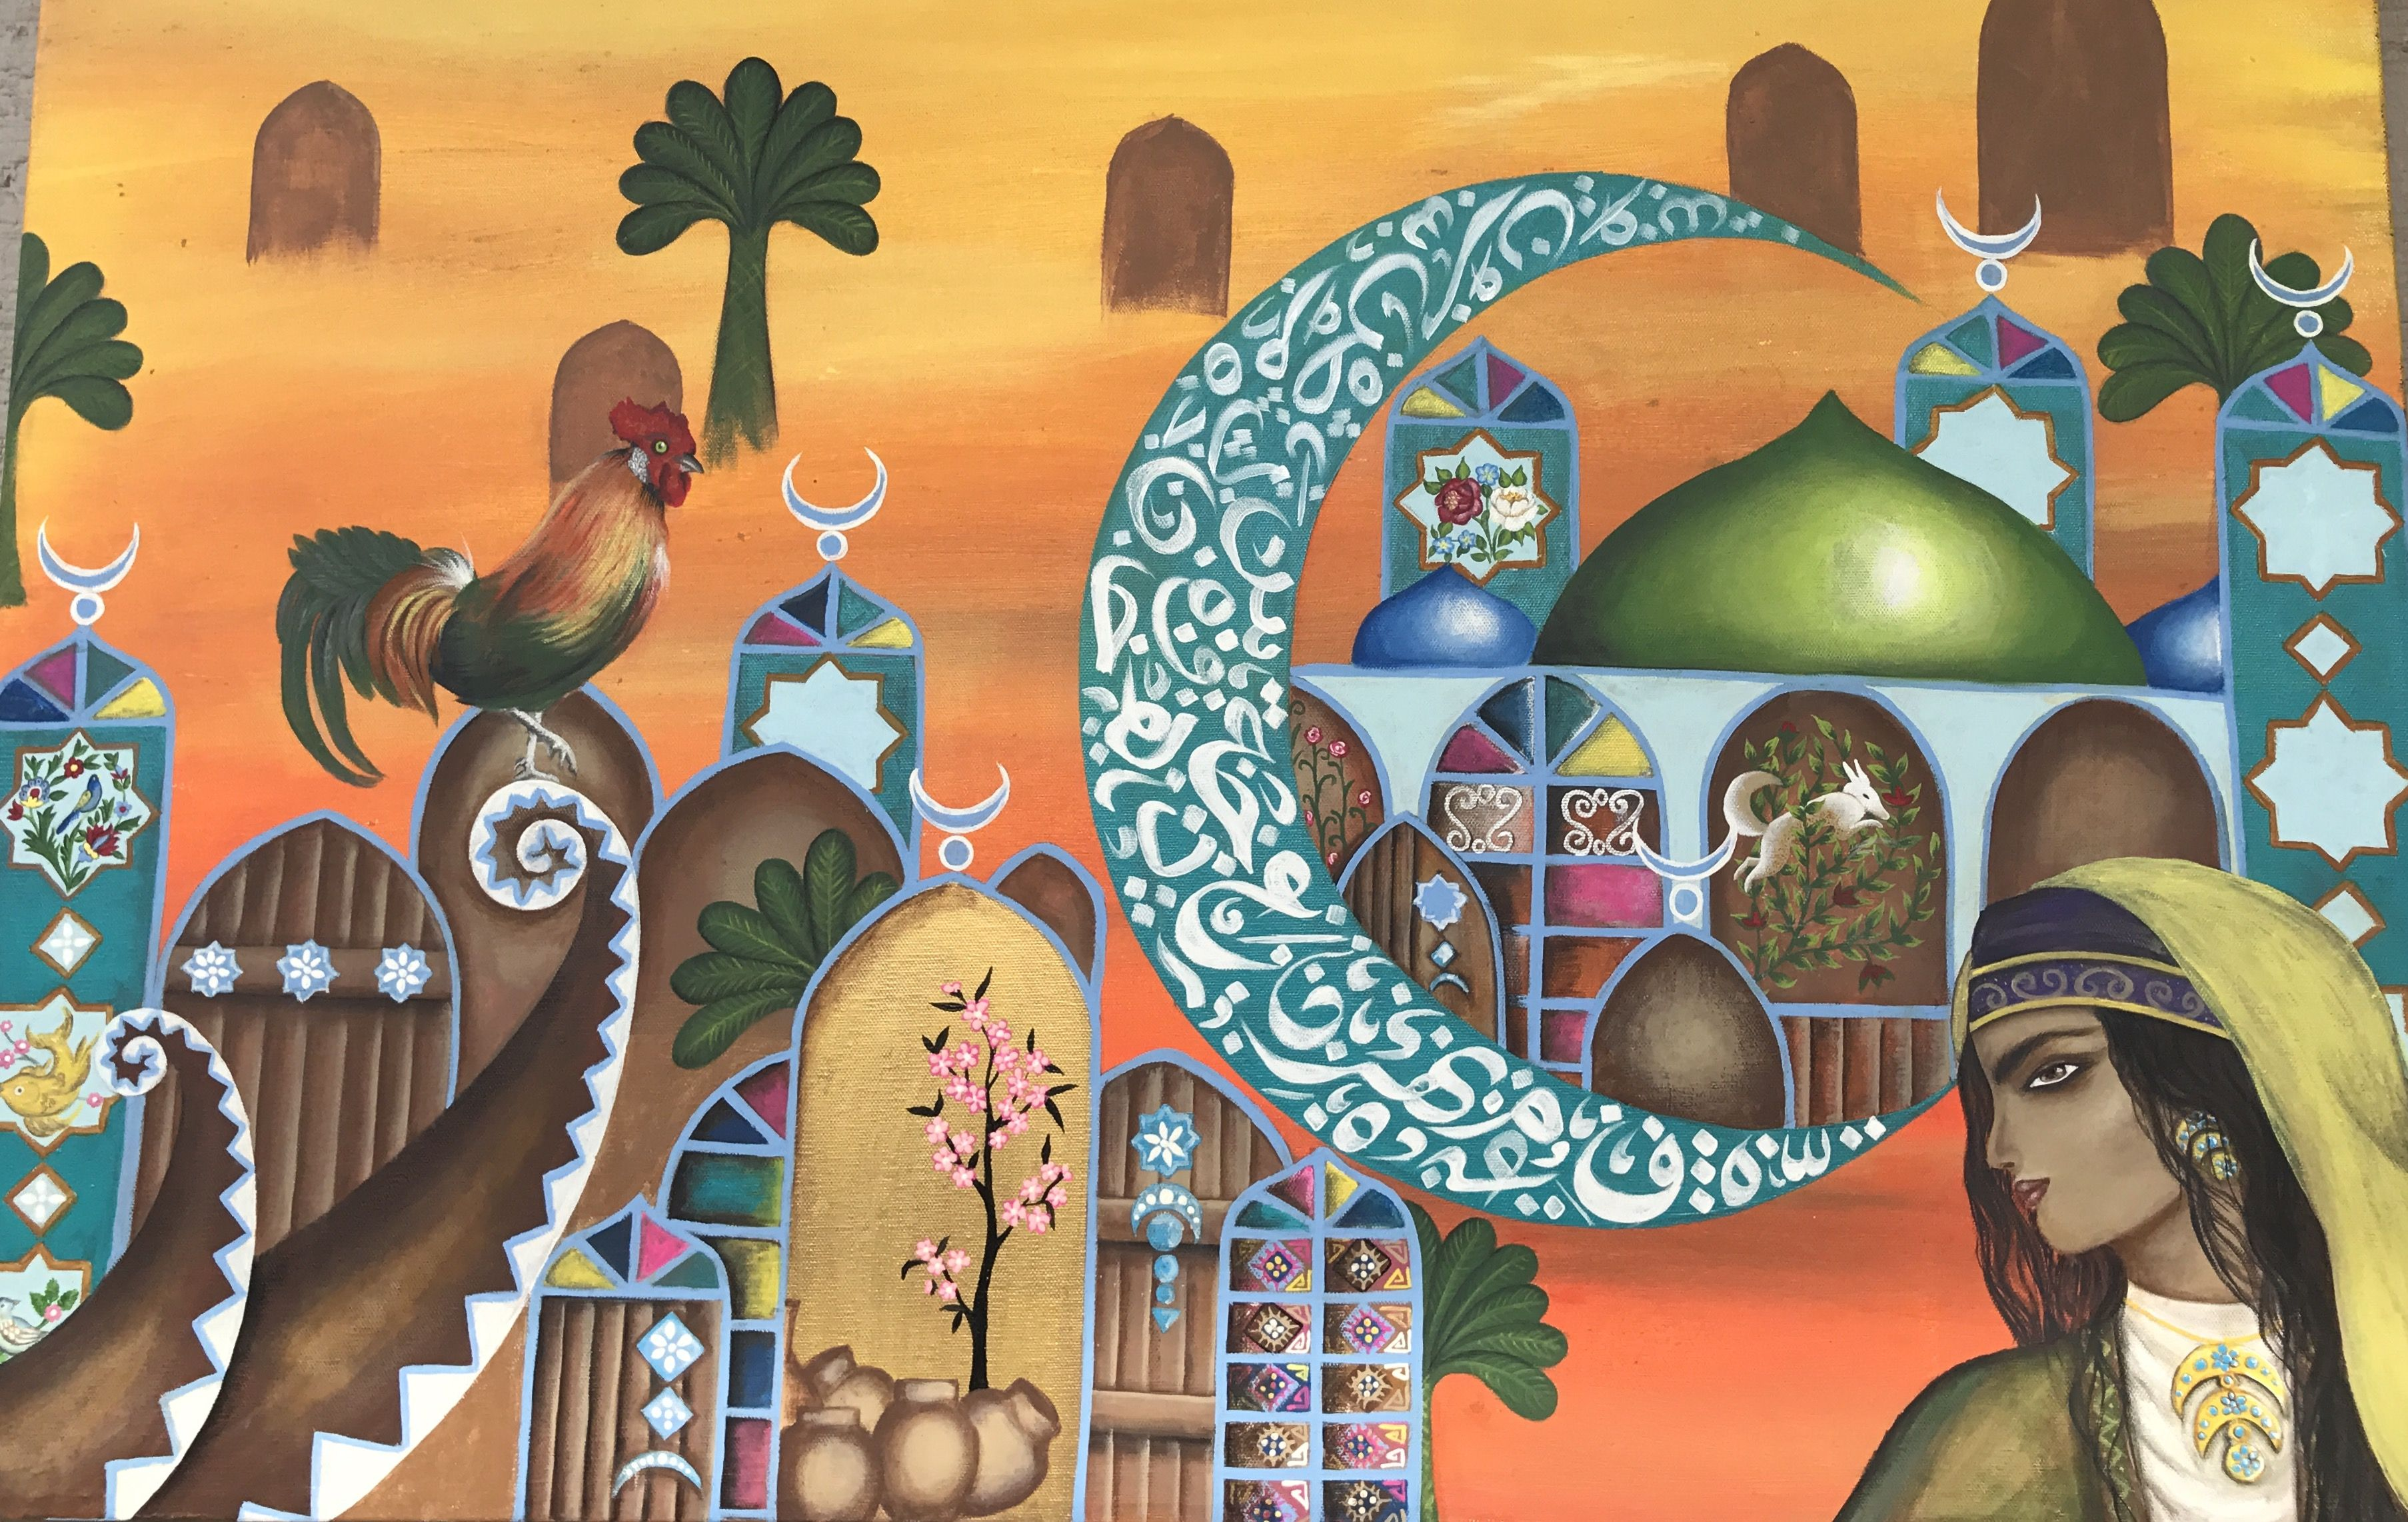 فن تشكيلي عراقي شهرزاد Folk Art Painting Art Painting Islamic Art